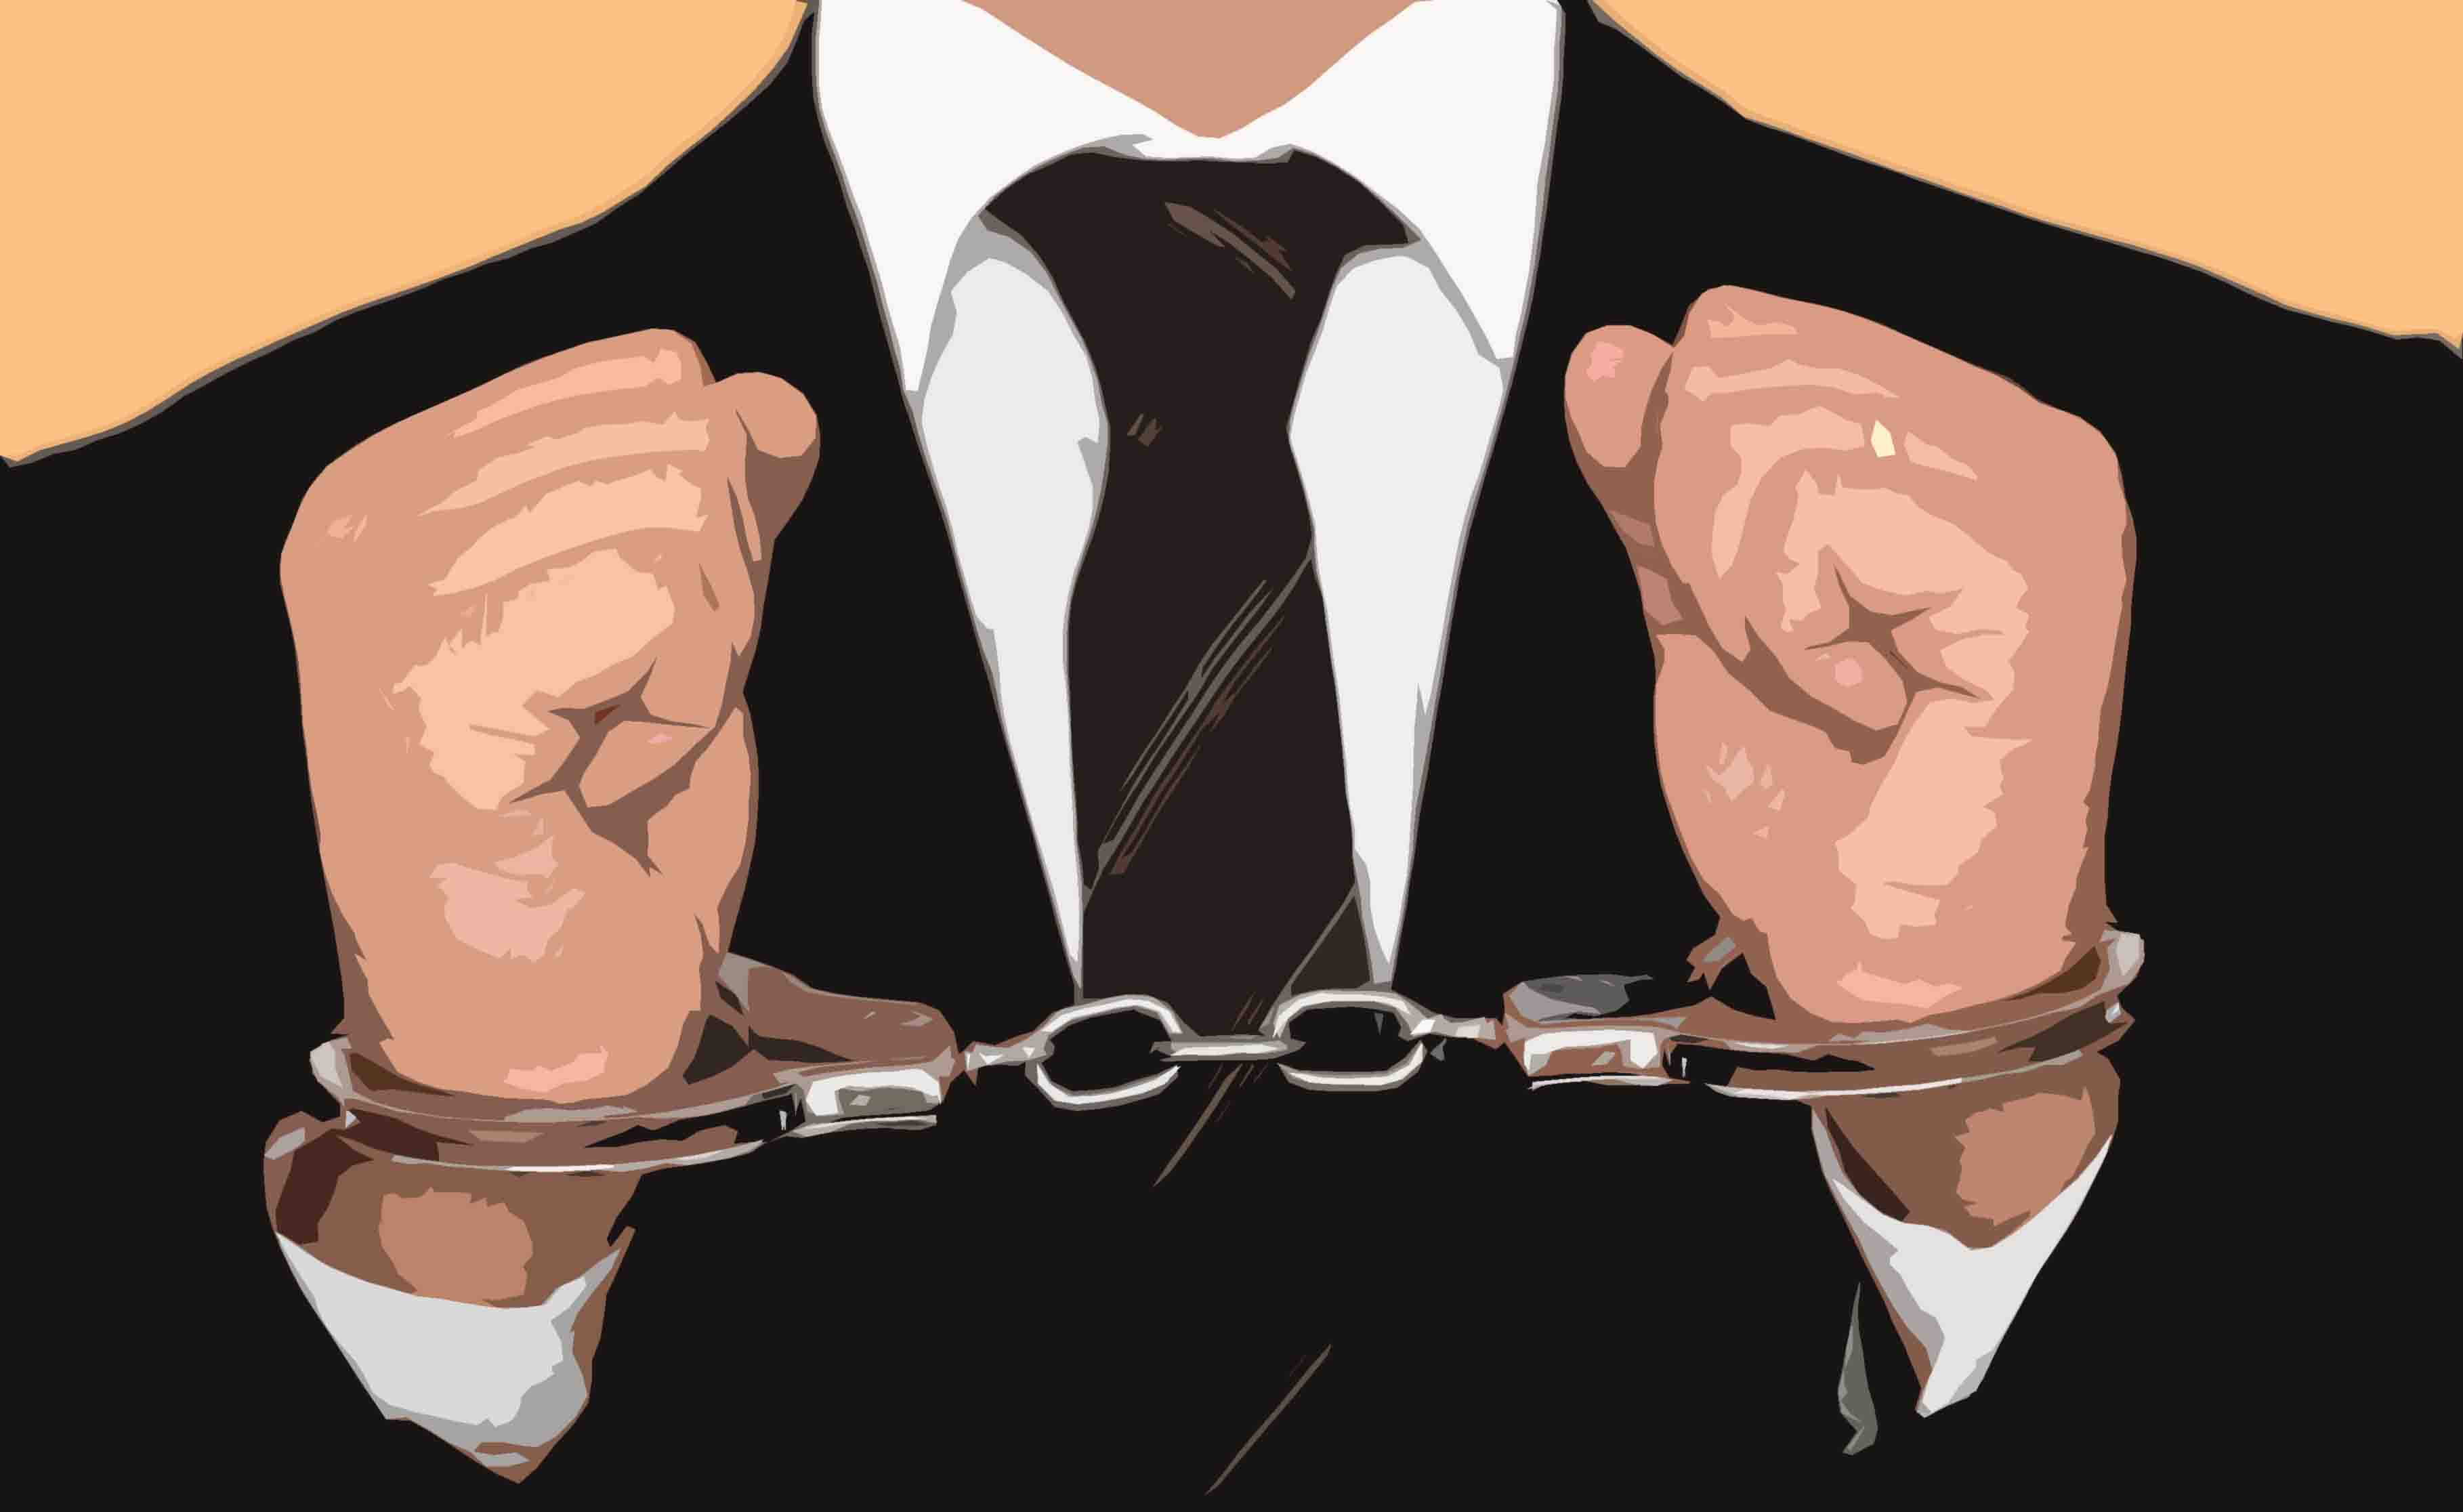 White collar crime arrest clipart jpg Prominent South Delhi businessman arrested by EOW for multi ... jpg